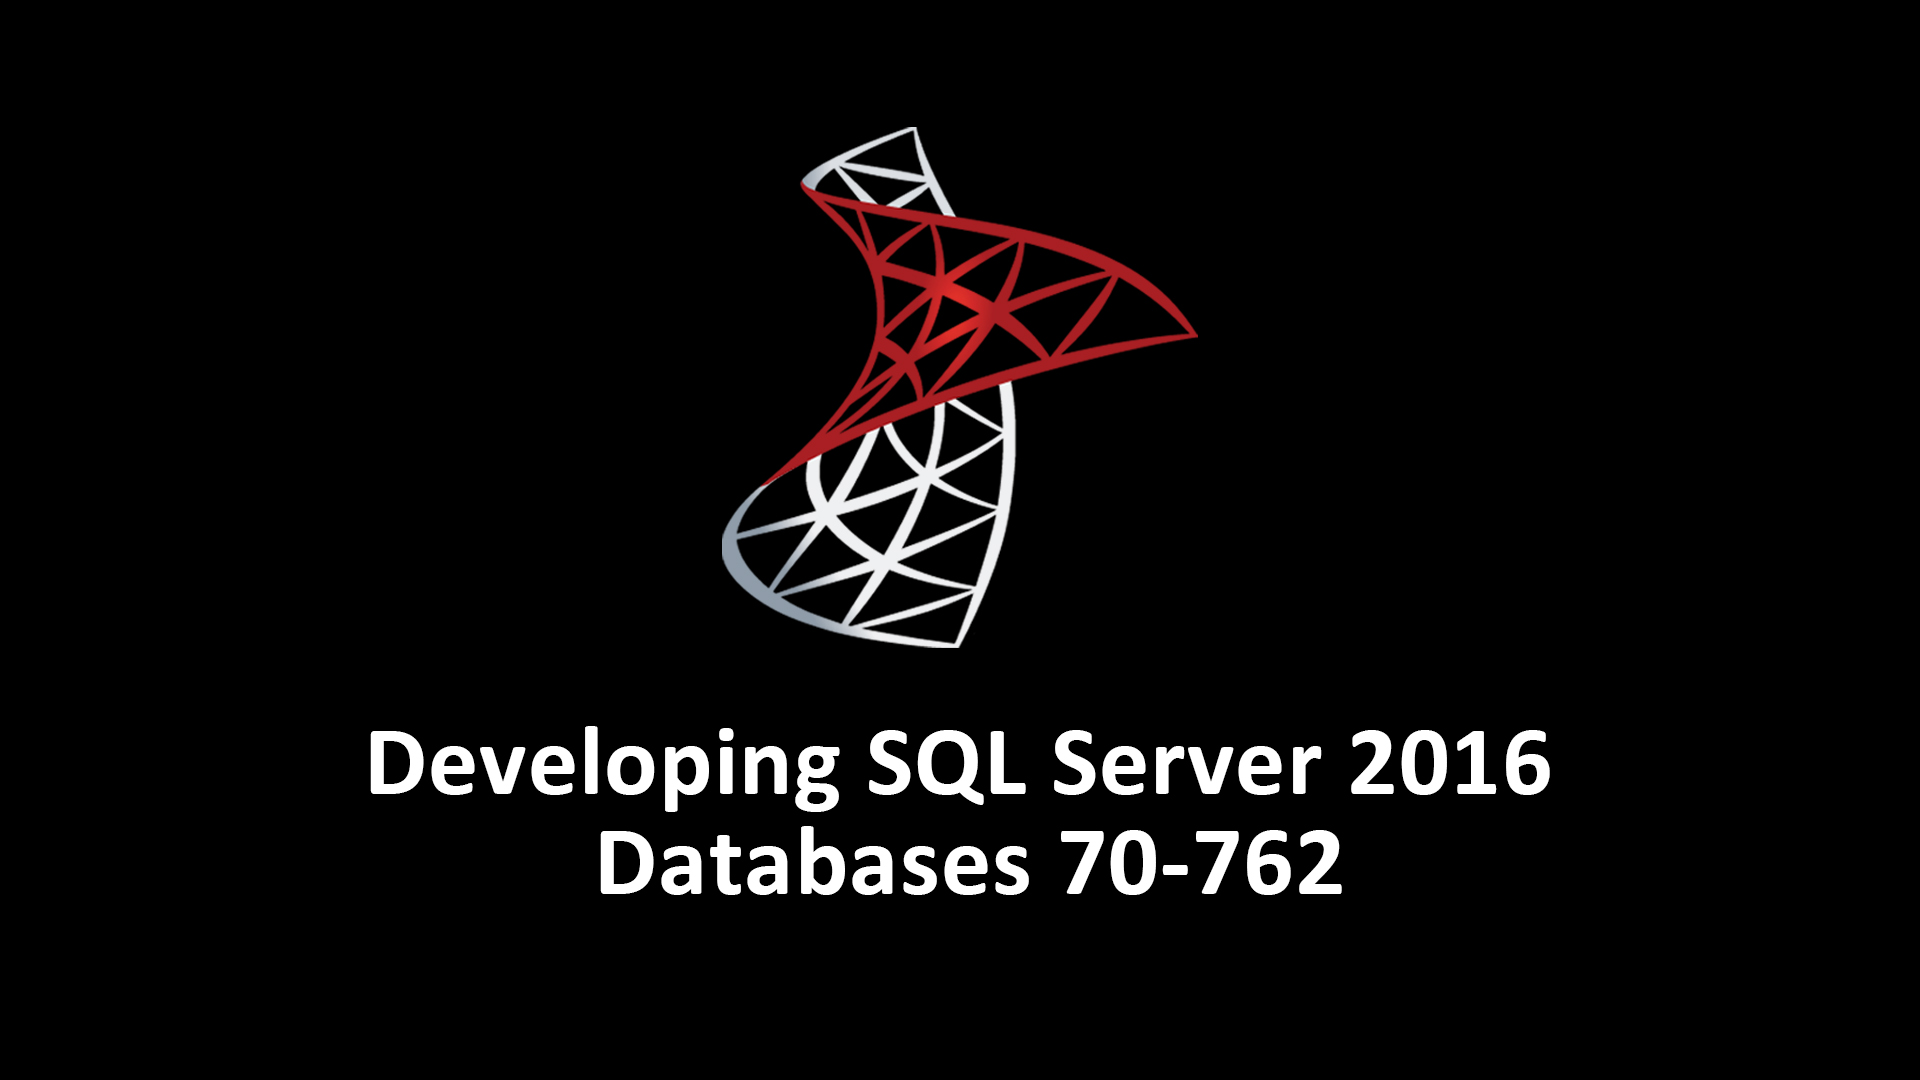 Developing SQL Server 2016 Databases 70-762